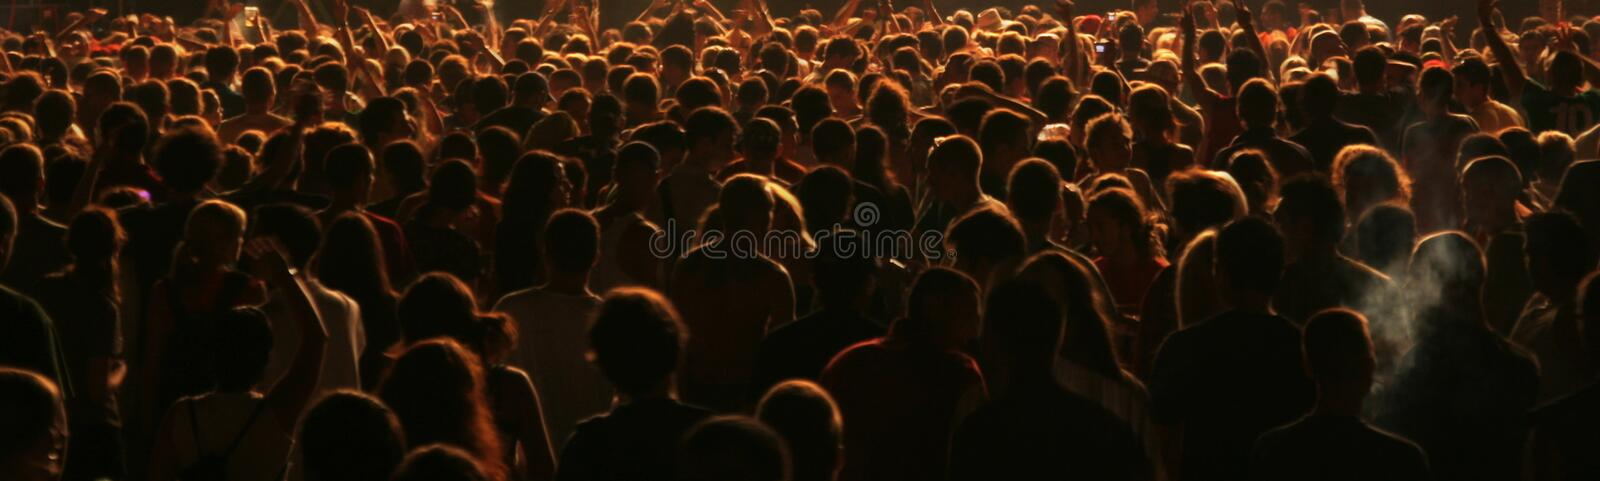 People crowd stock images